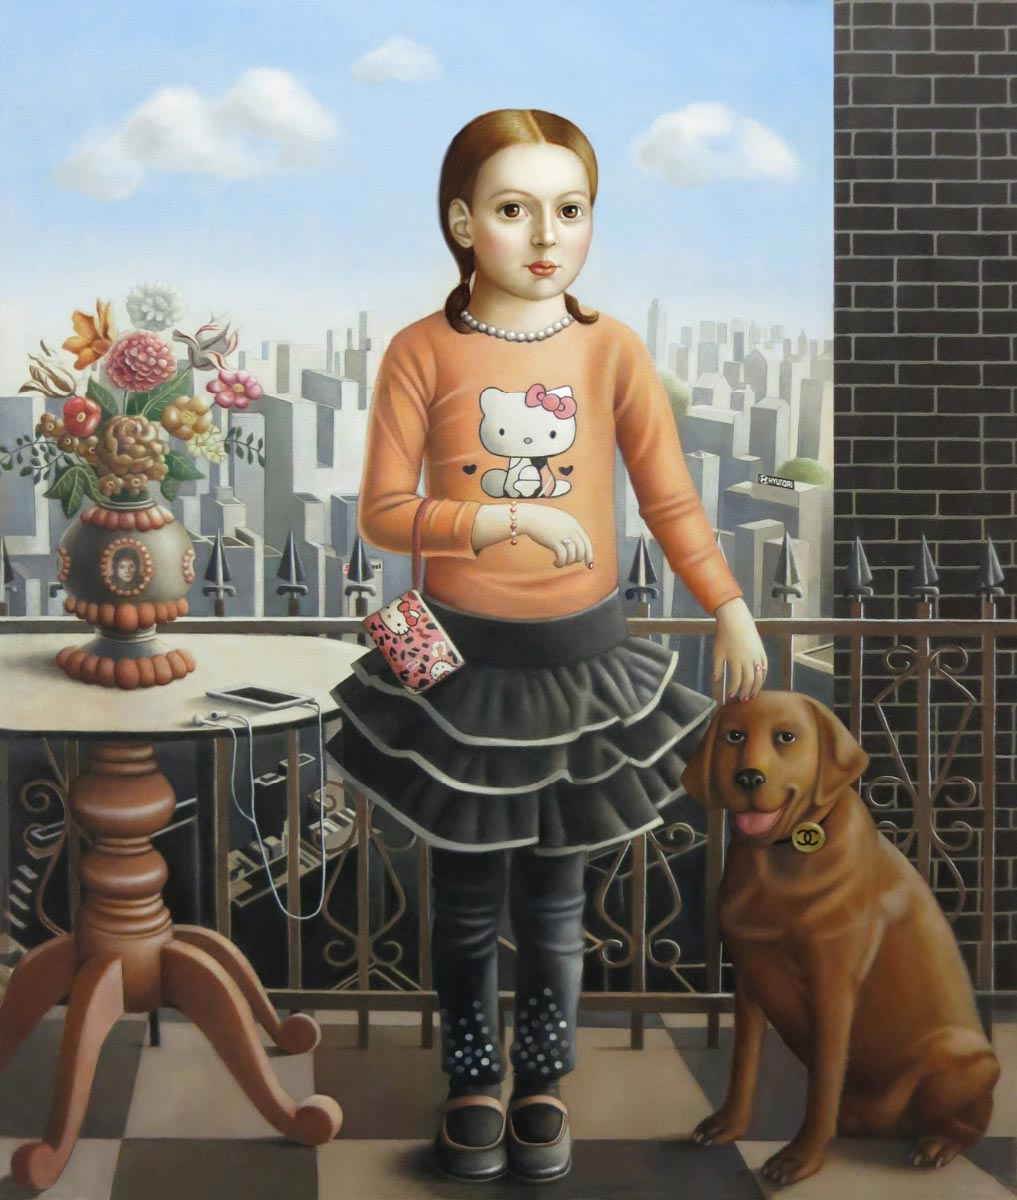 AMY HILL, Girl with Dog